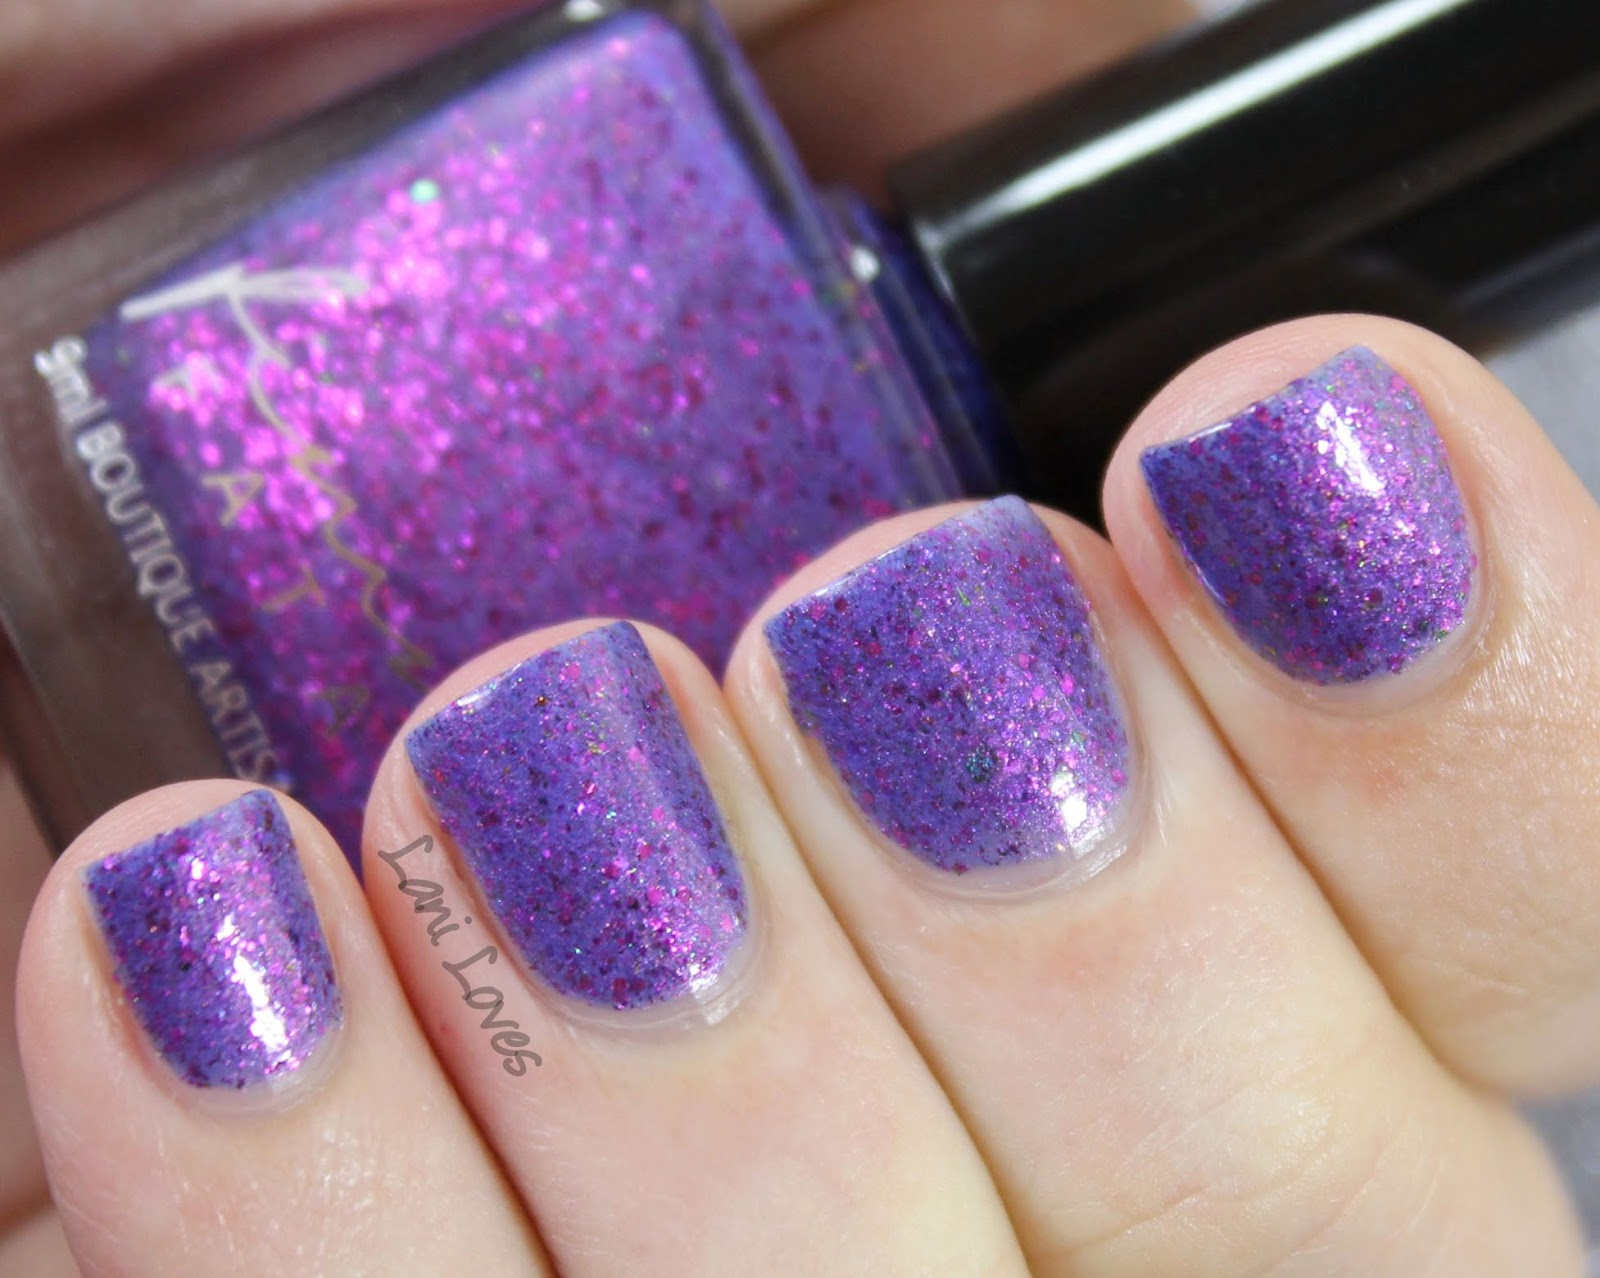 Femme Fatale Cosmetics - Bodice Lace nail polish swatches & review